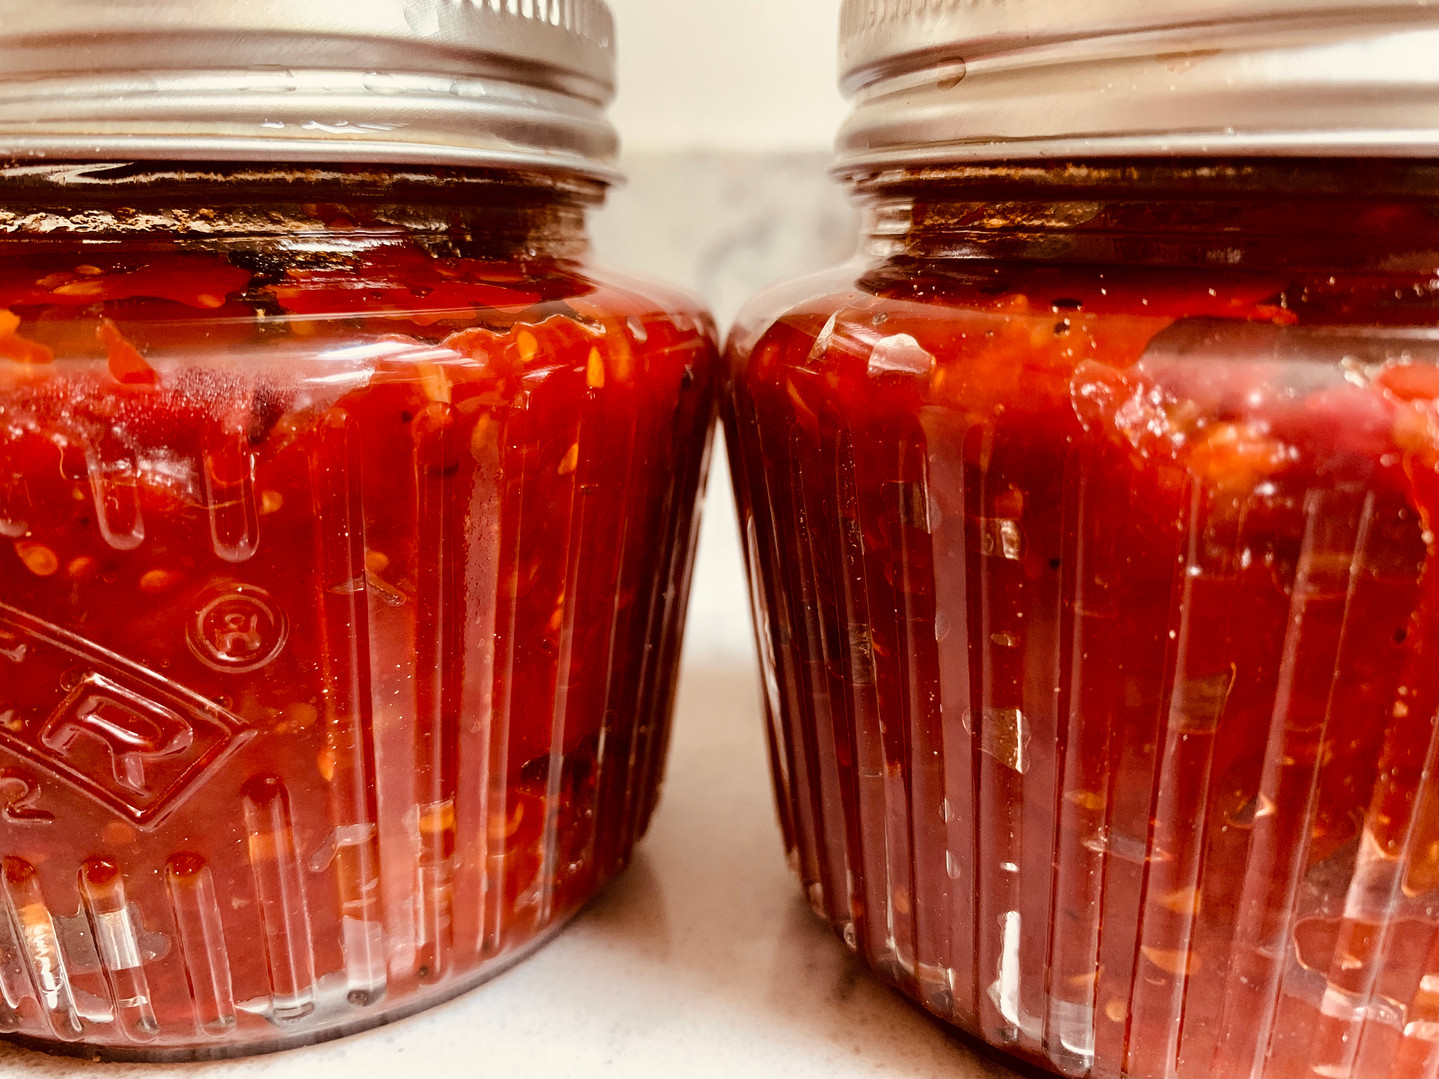 Tomato  and chilli sauce for pizza or pasta